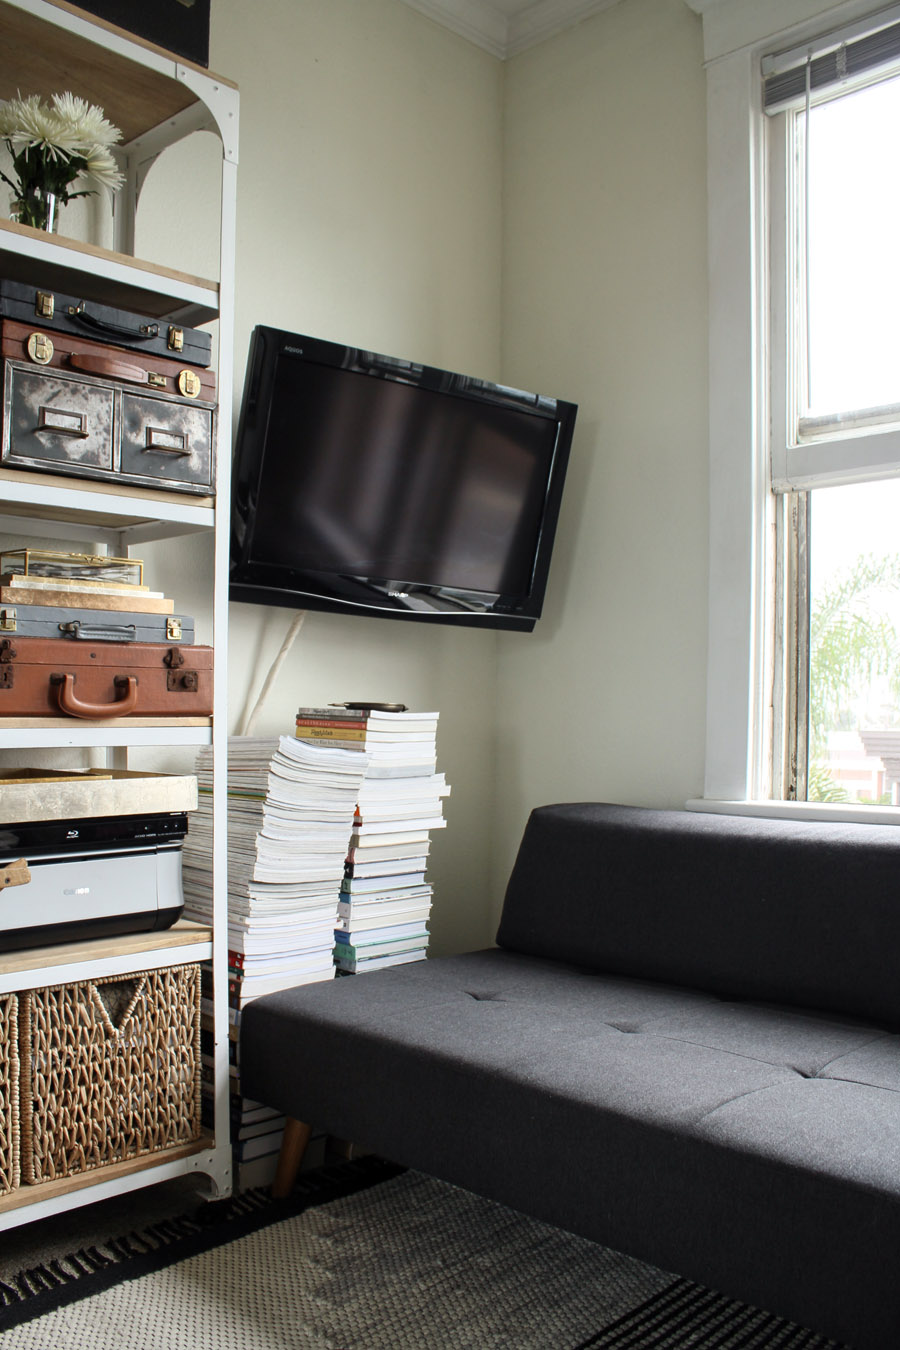 Retro Sofa Fitting A Home Into 200 Square Feet - Front + Main